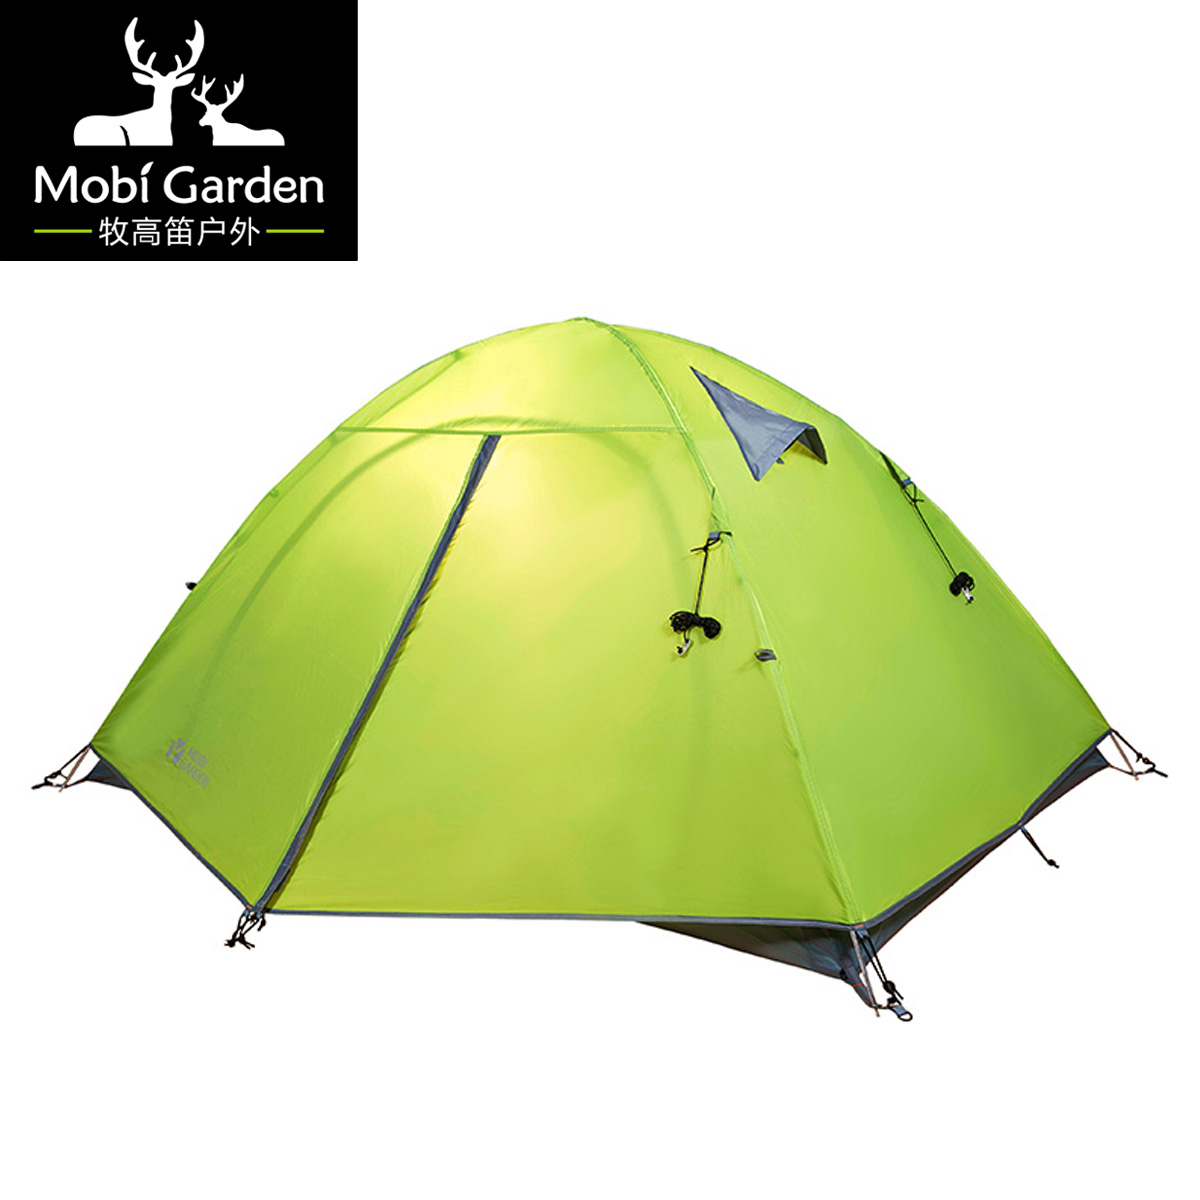 ФОТО Outdoor tents breathable water-resistant double layer tent camping hiking qr2